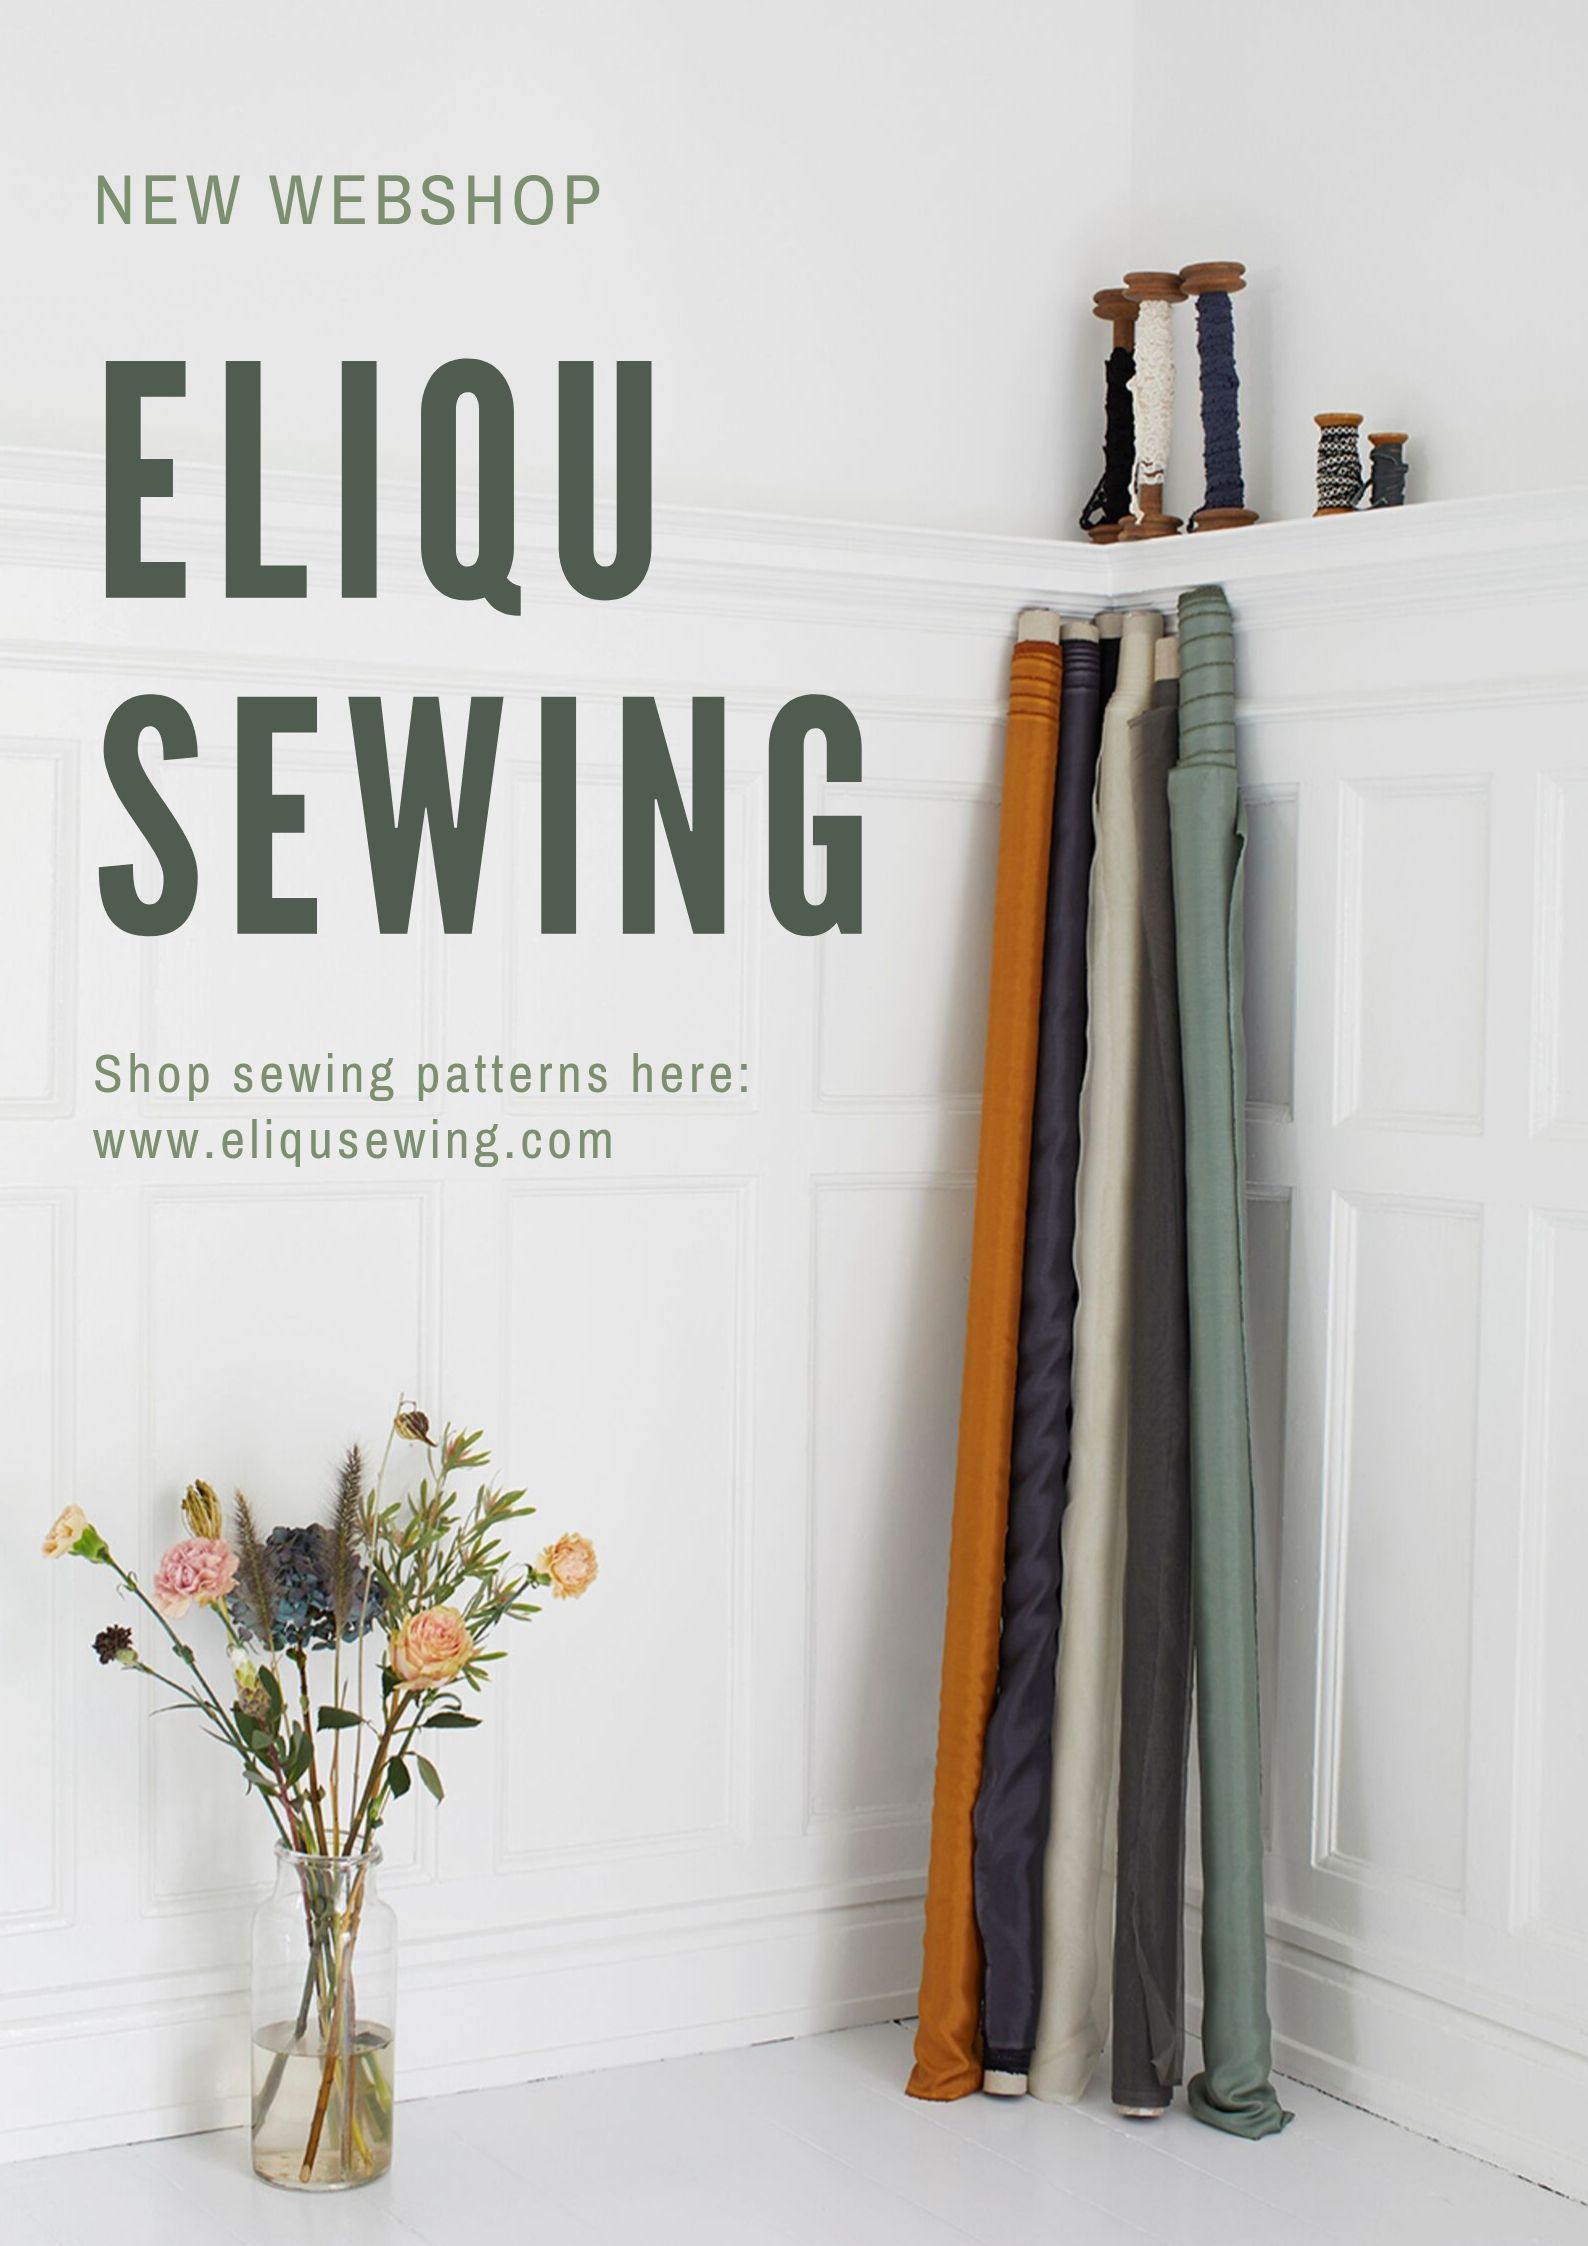 ELiQU Sewing new webshop